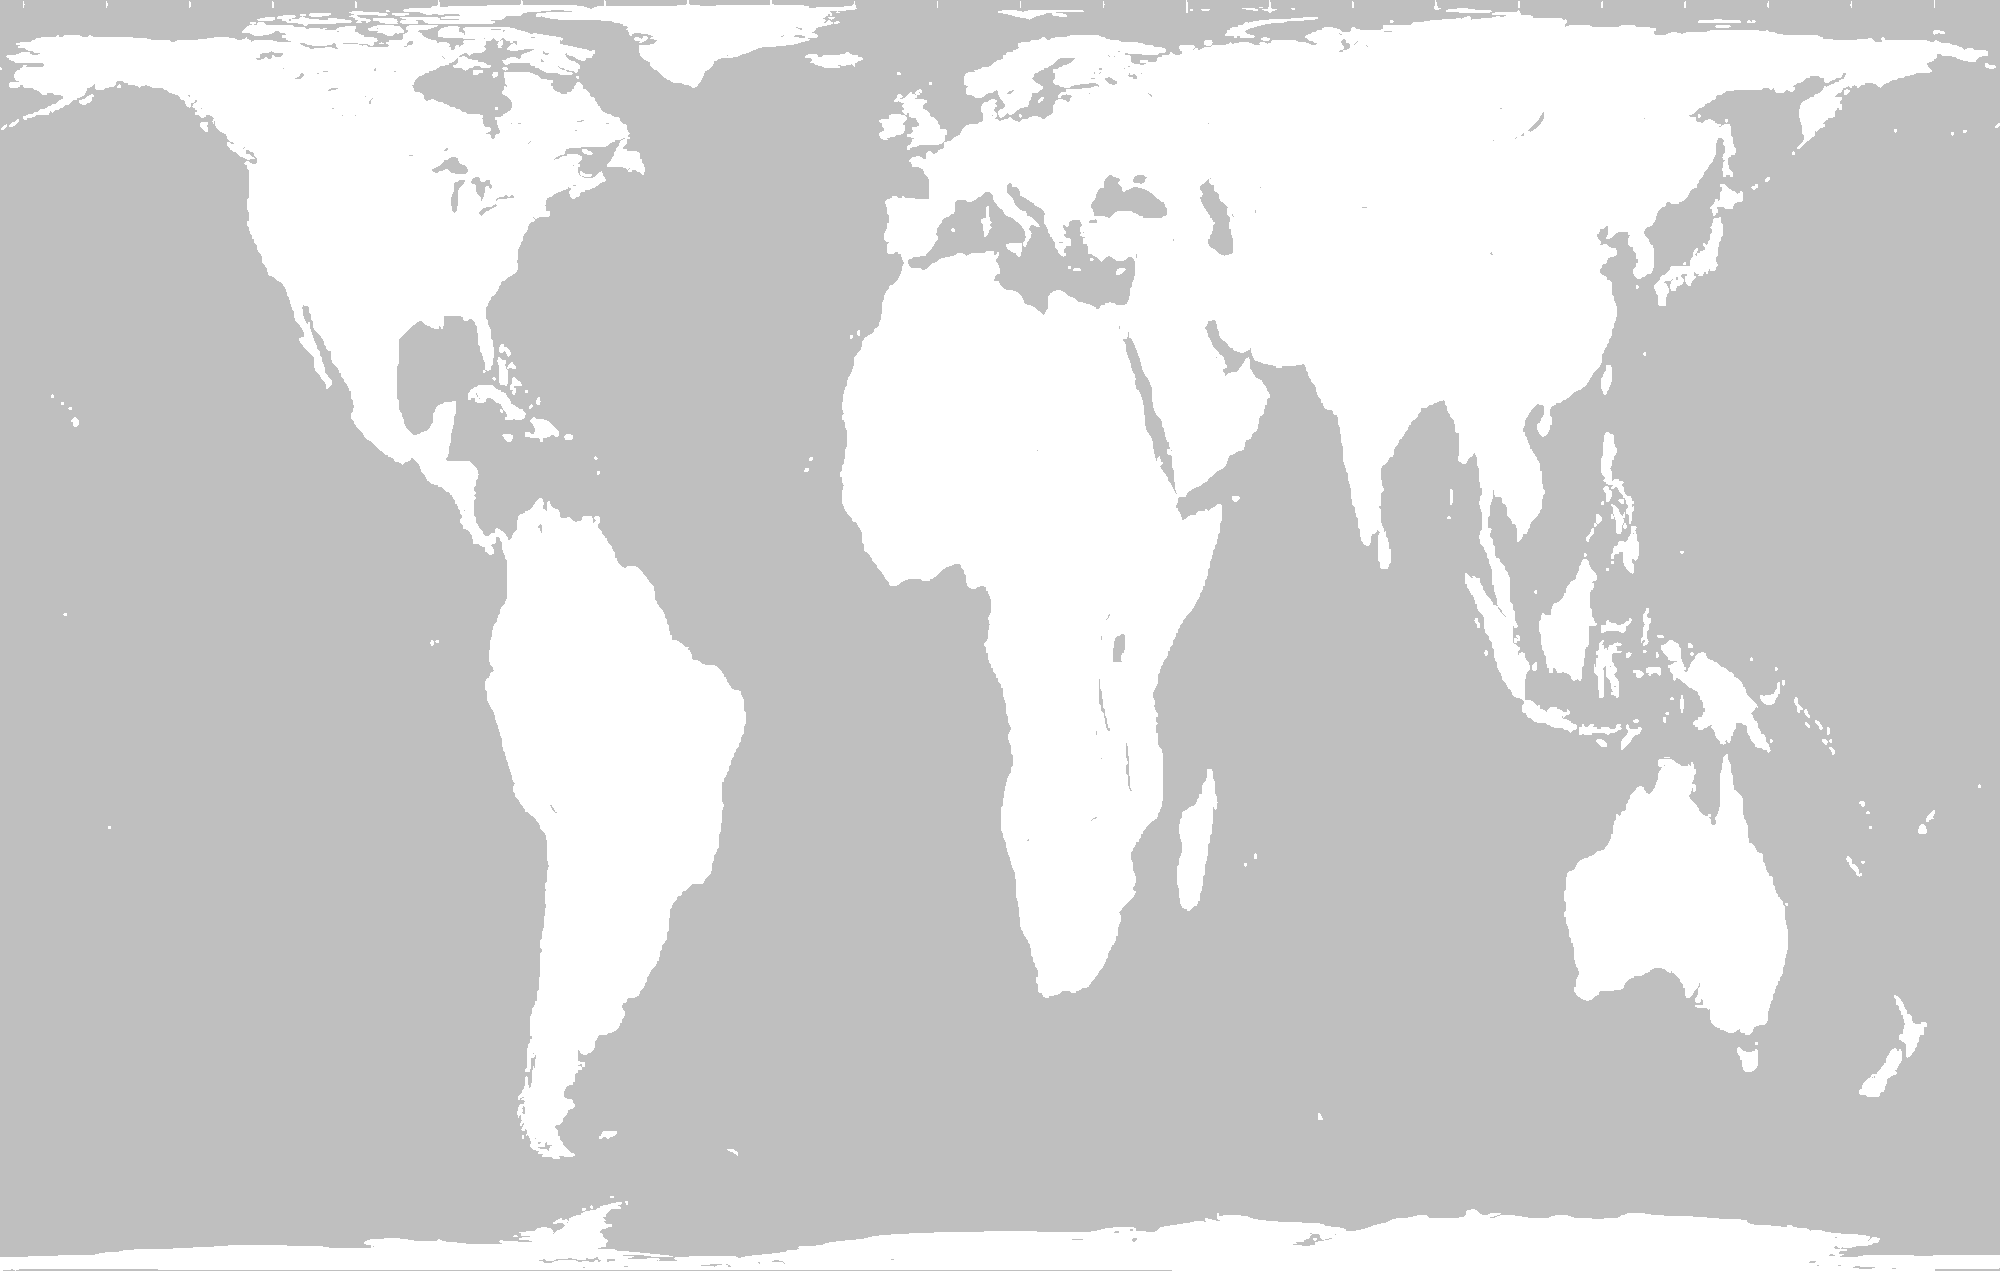 vector world map with File Peters Projection  White  26 Grey on 4305466116 together with File Peters projection  white  26 grey additionally 3292794681 likewise File 10k nike 08 in addition 6780374694.